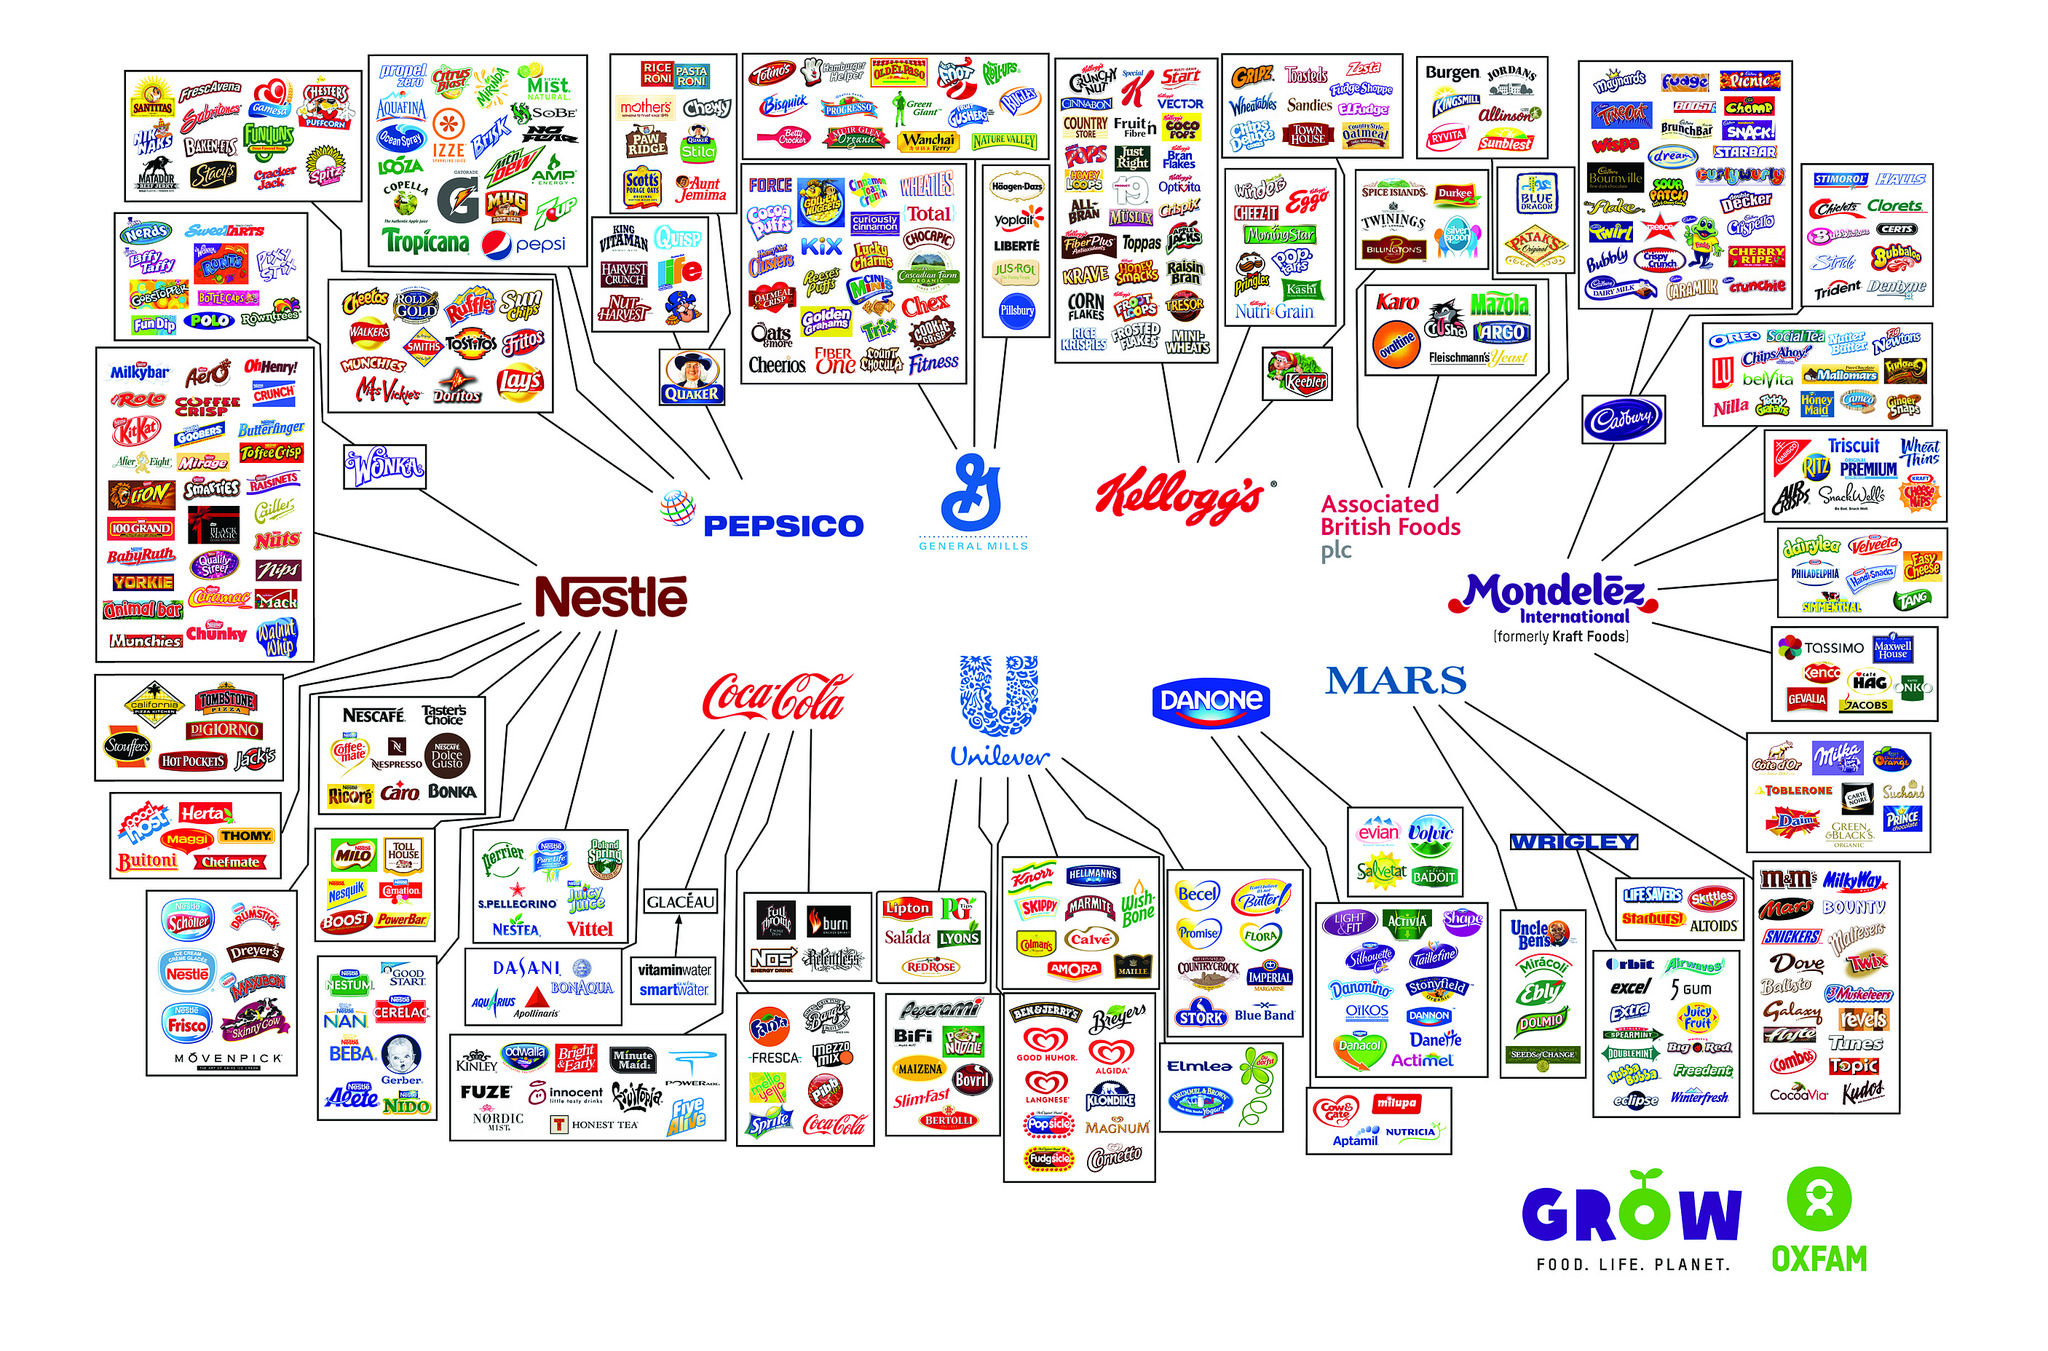 10 companies that control the food industry daily infographic